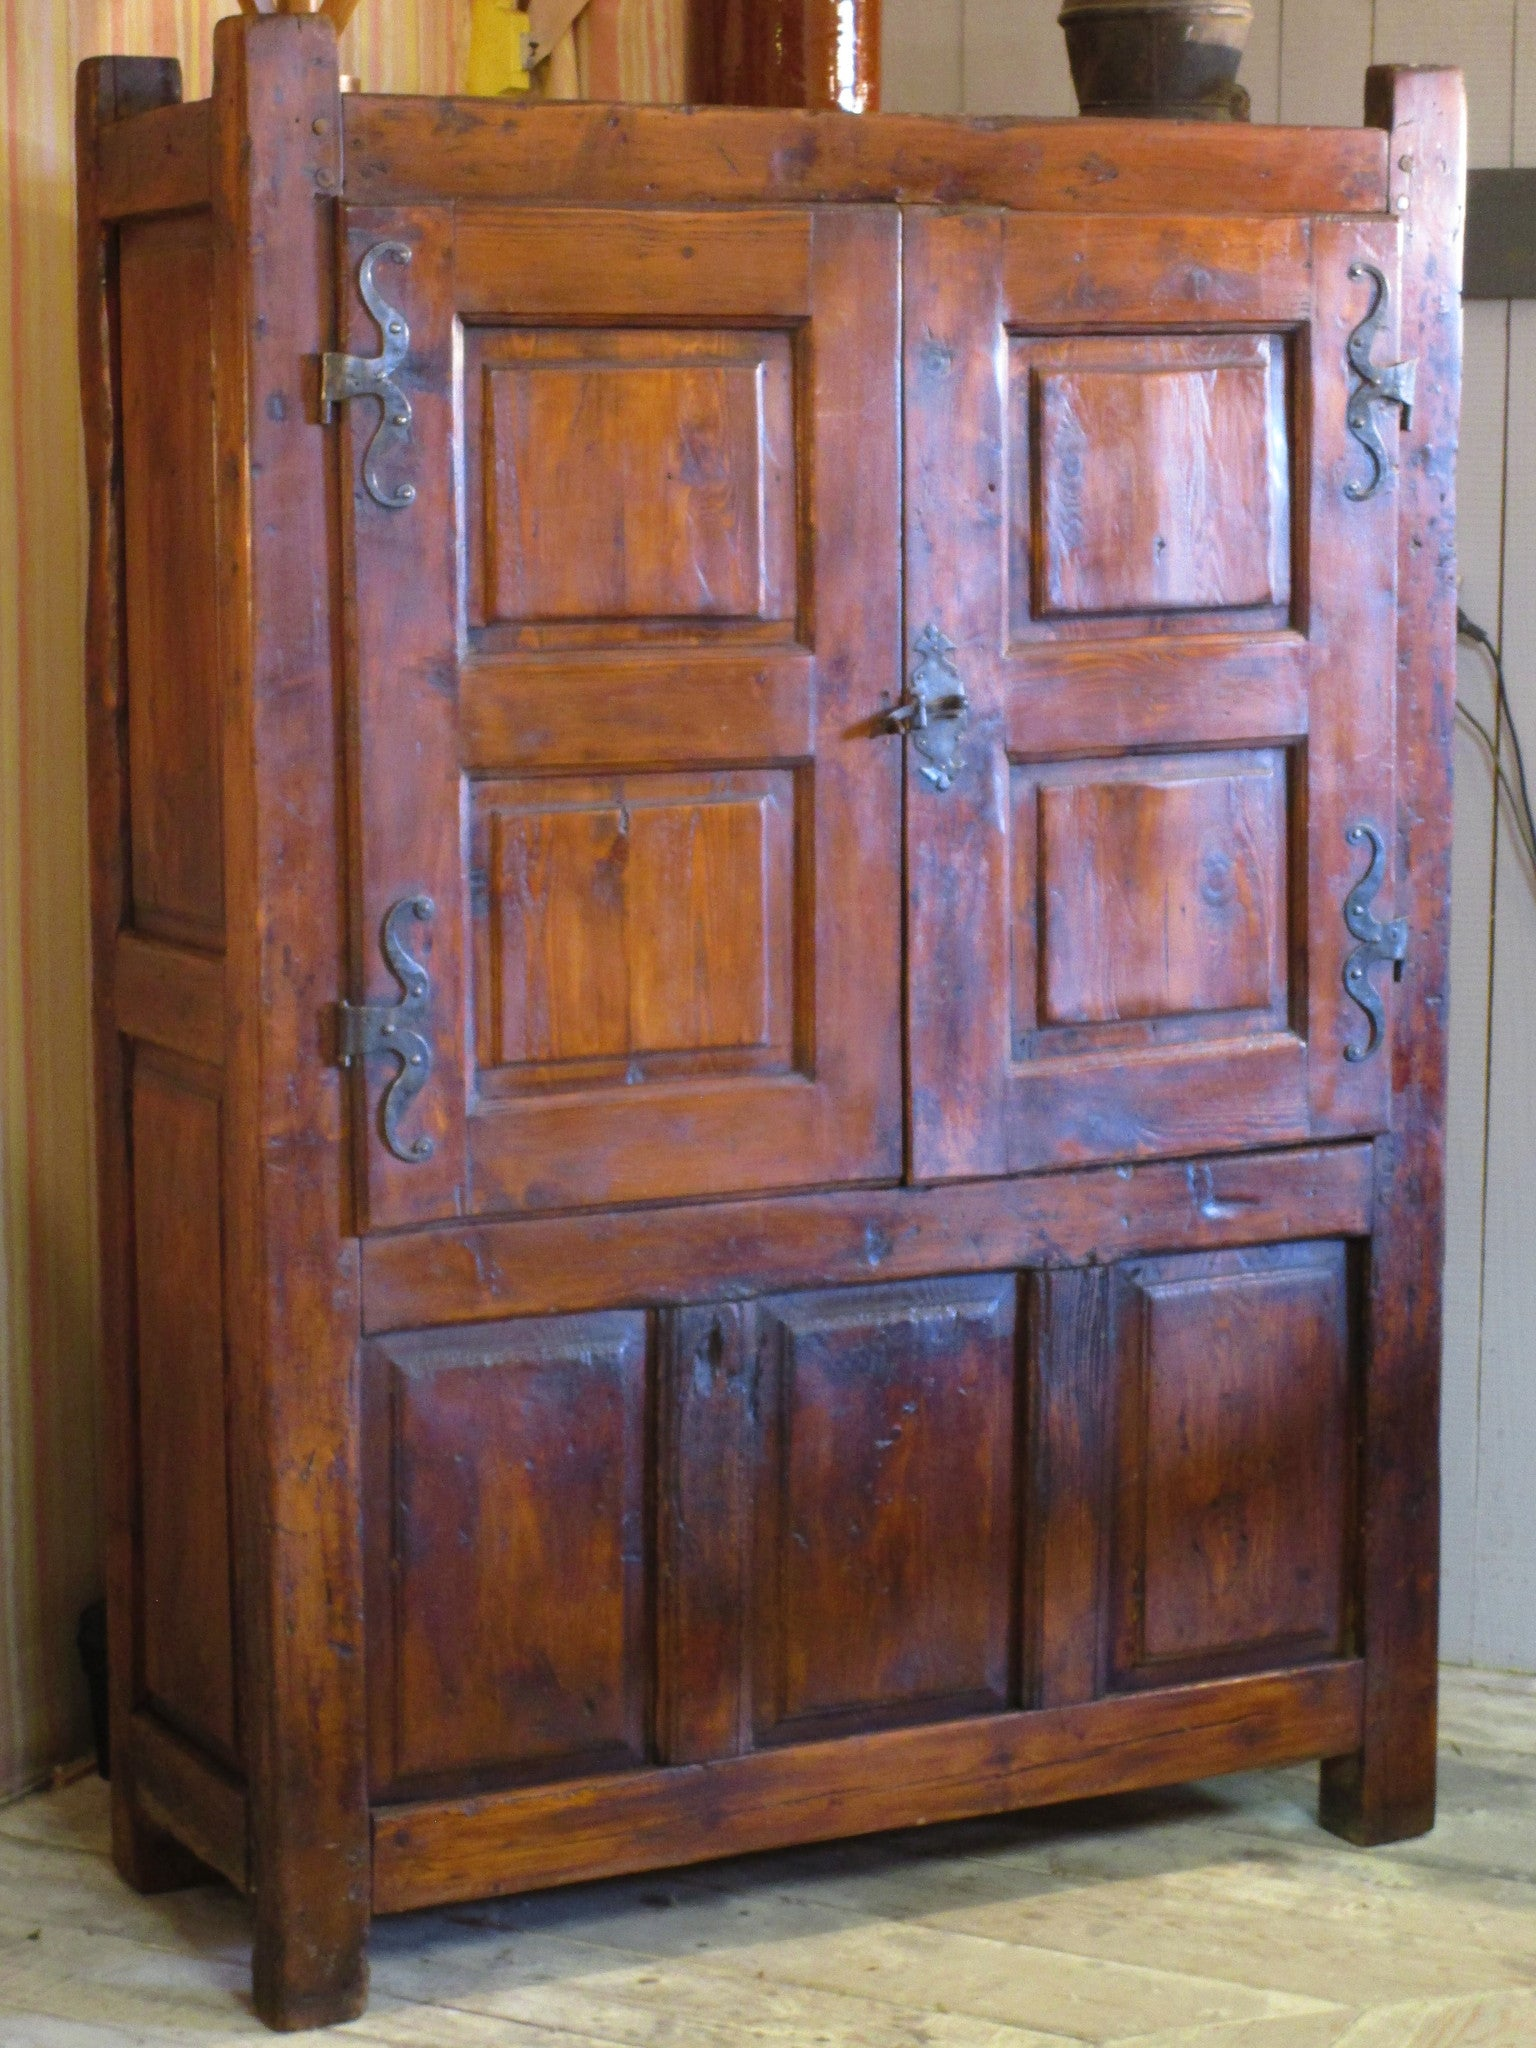 18th century chestnut ardeche armoire